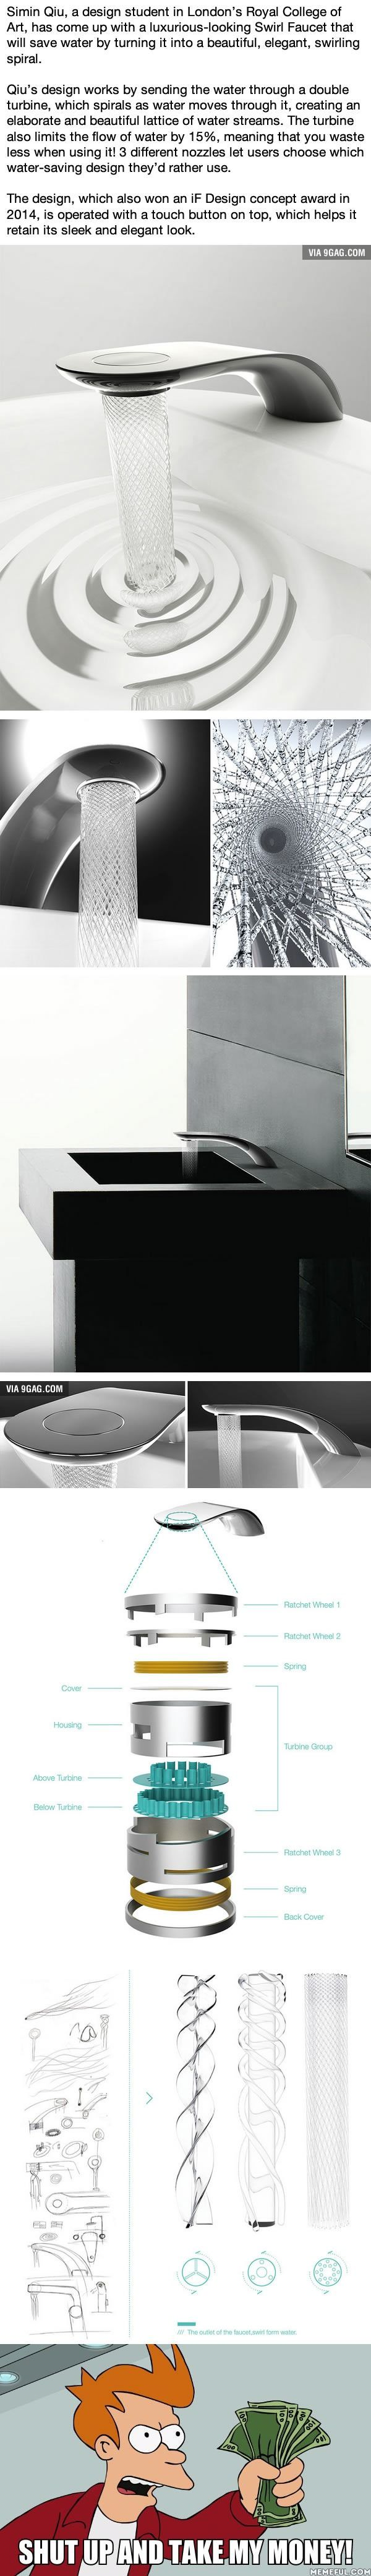 Student\'s Faucet Design Saves Water By Swirling It Into Beautiful ...